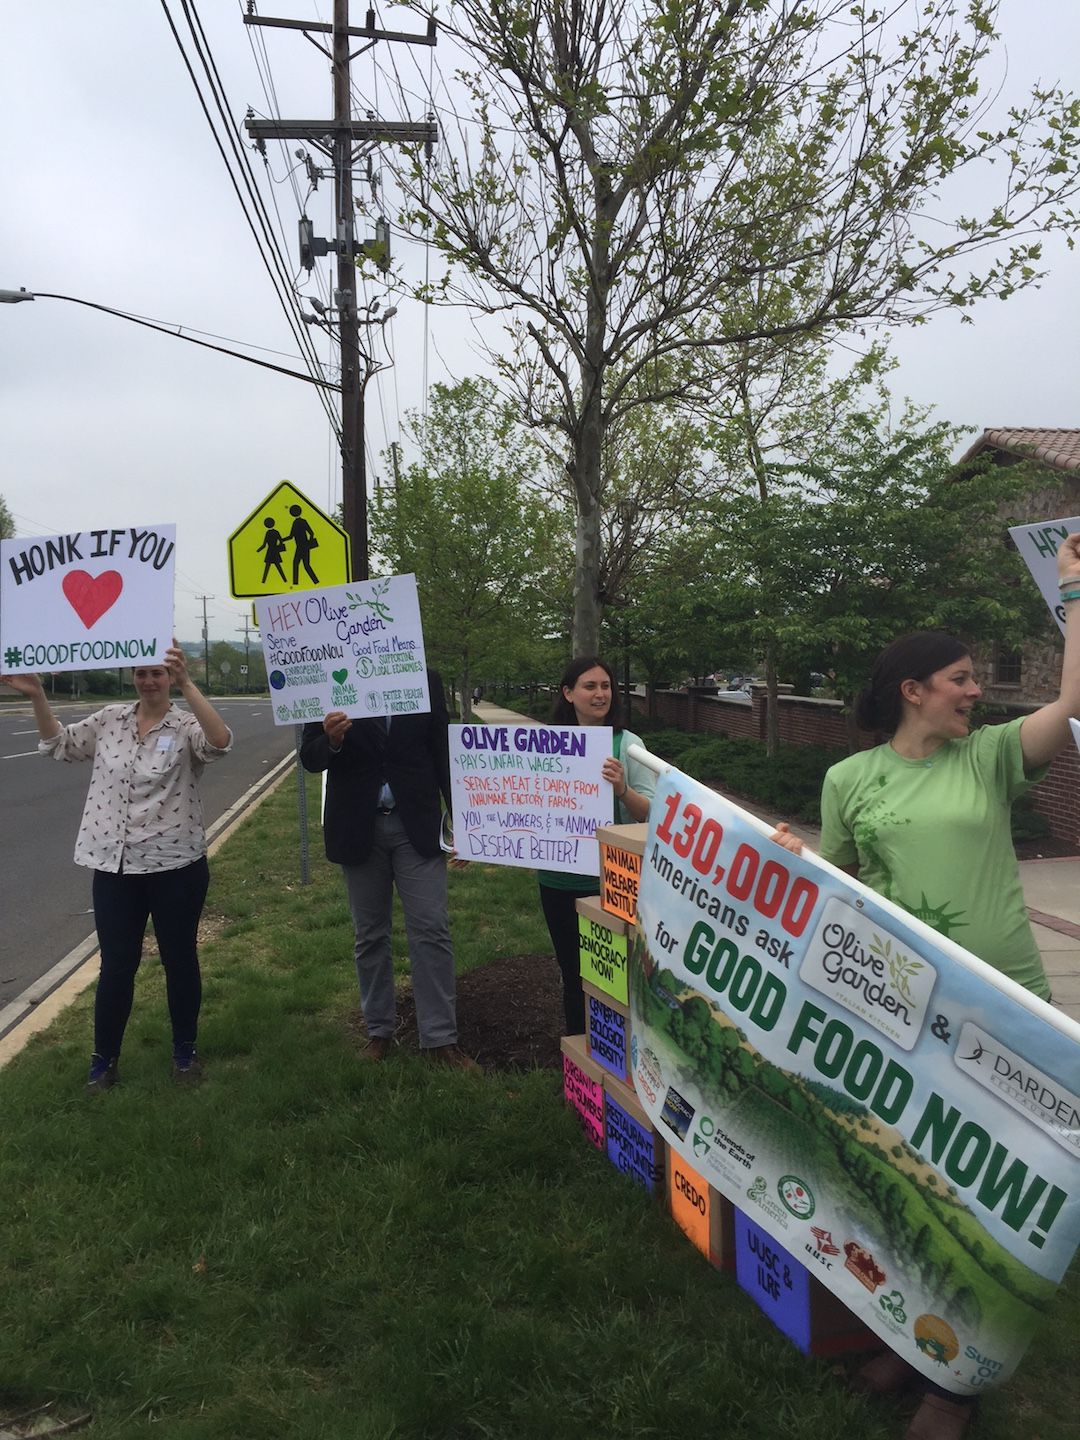 Protesters at a Hyattsville, Md. Olive Garden Thursday